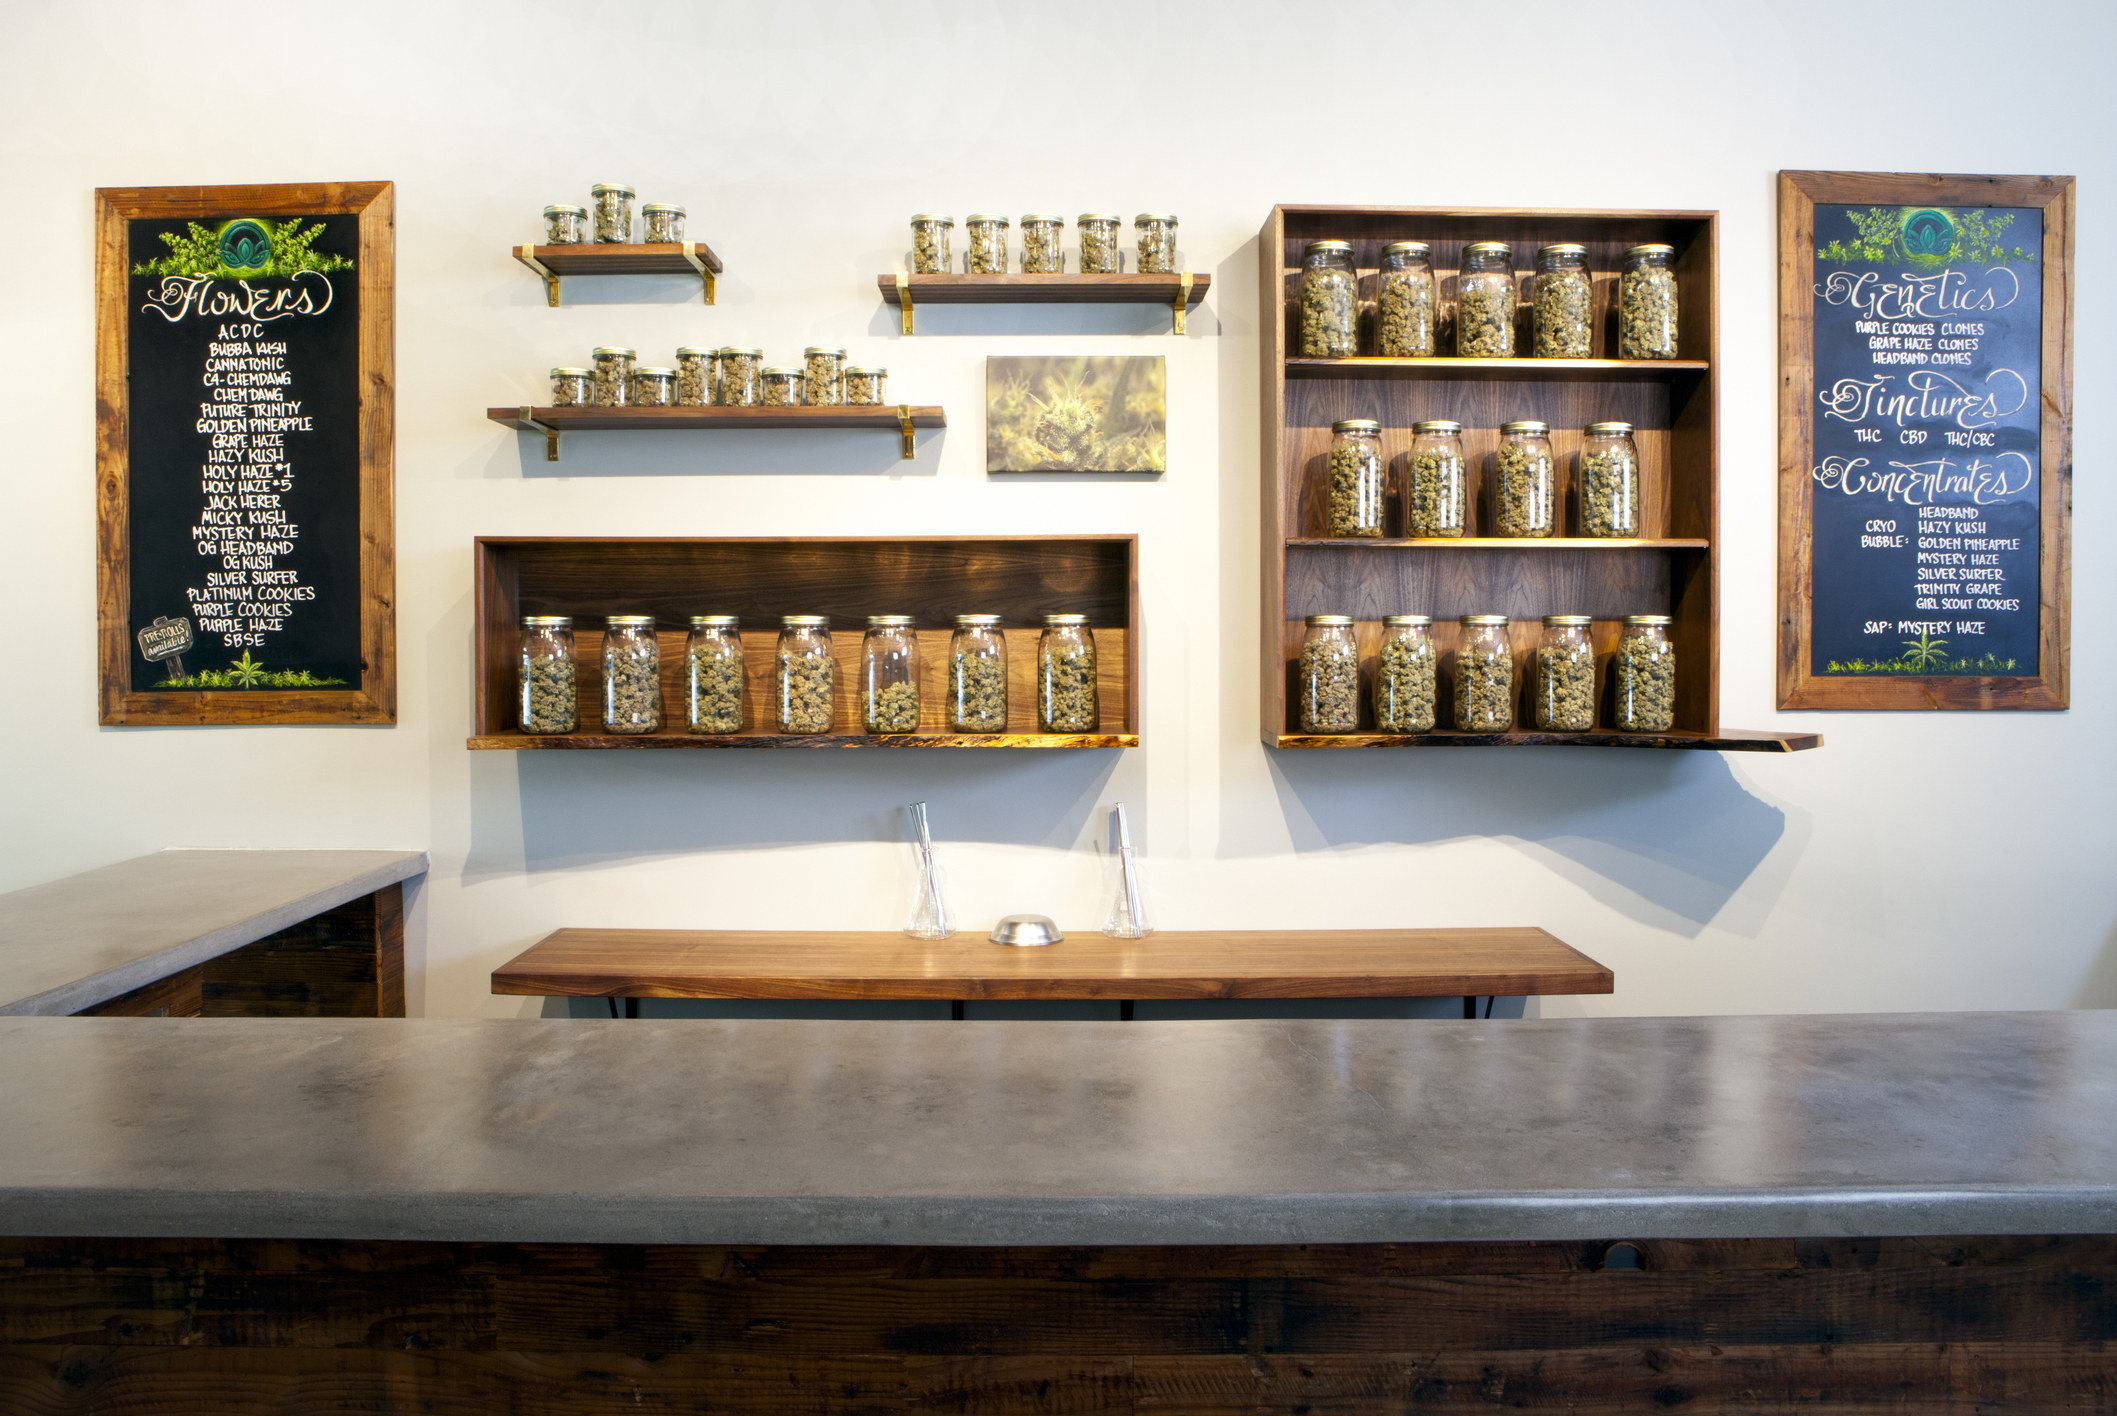 A weed store